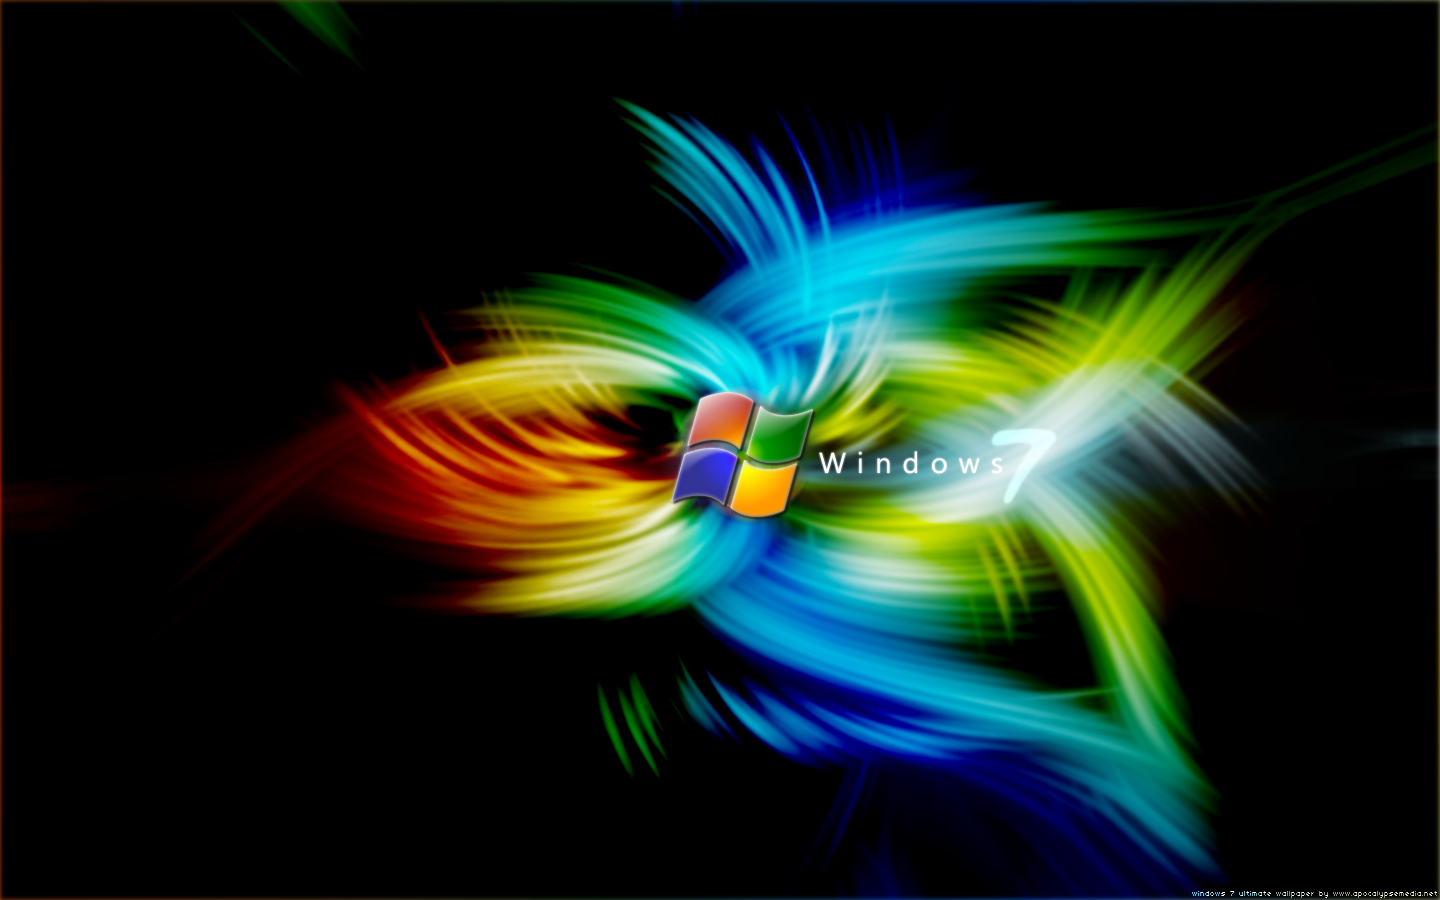 Windows Seven 7 Original Wide HD Wallpapers HD  - windows seven 7 original wide hd wallpapers